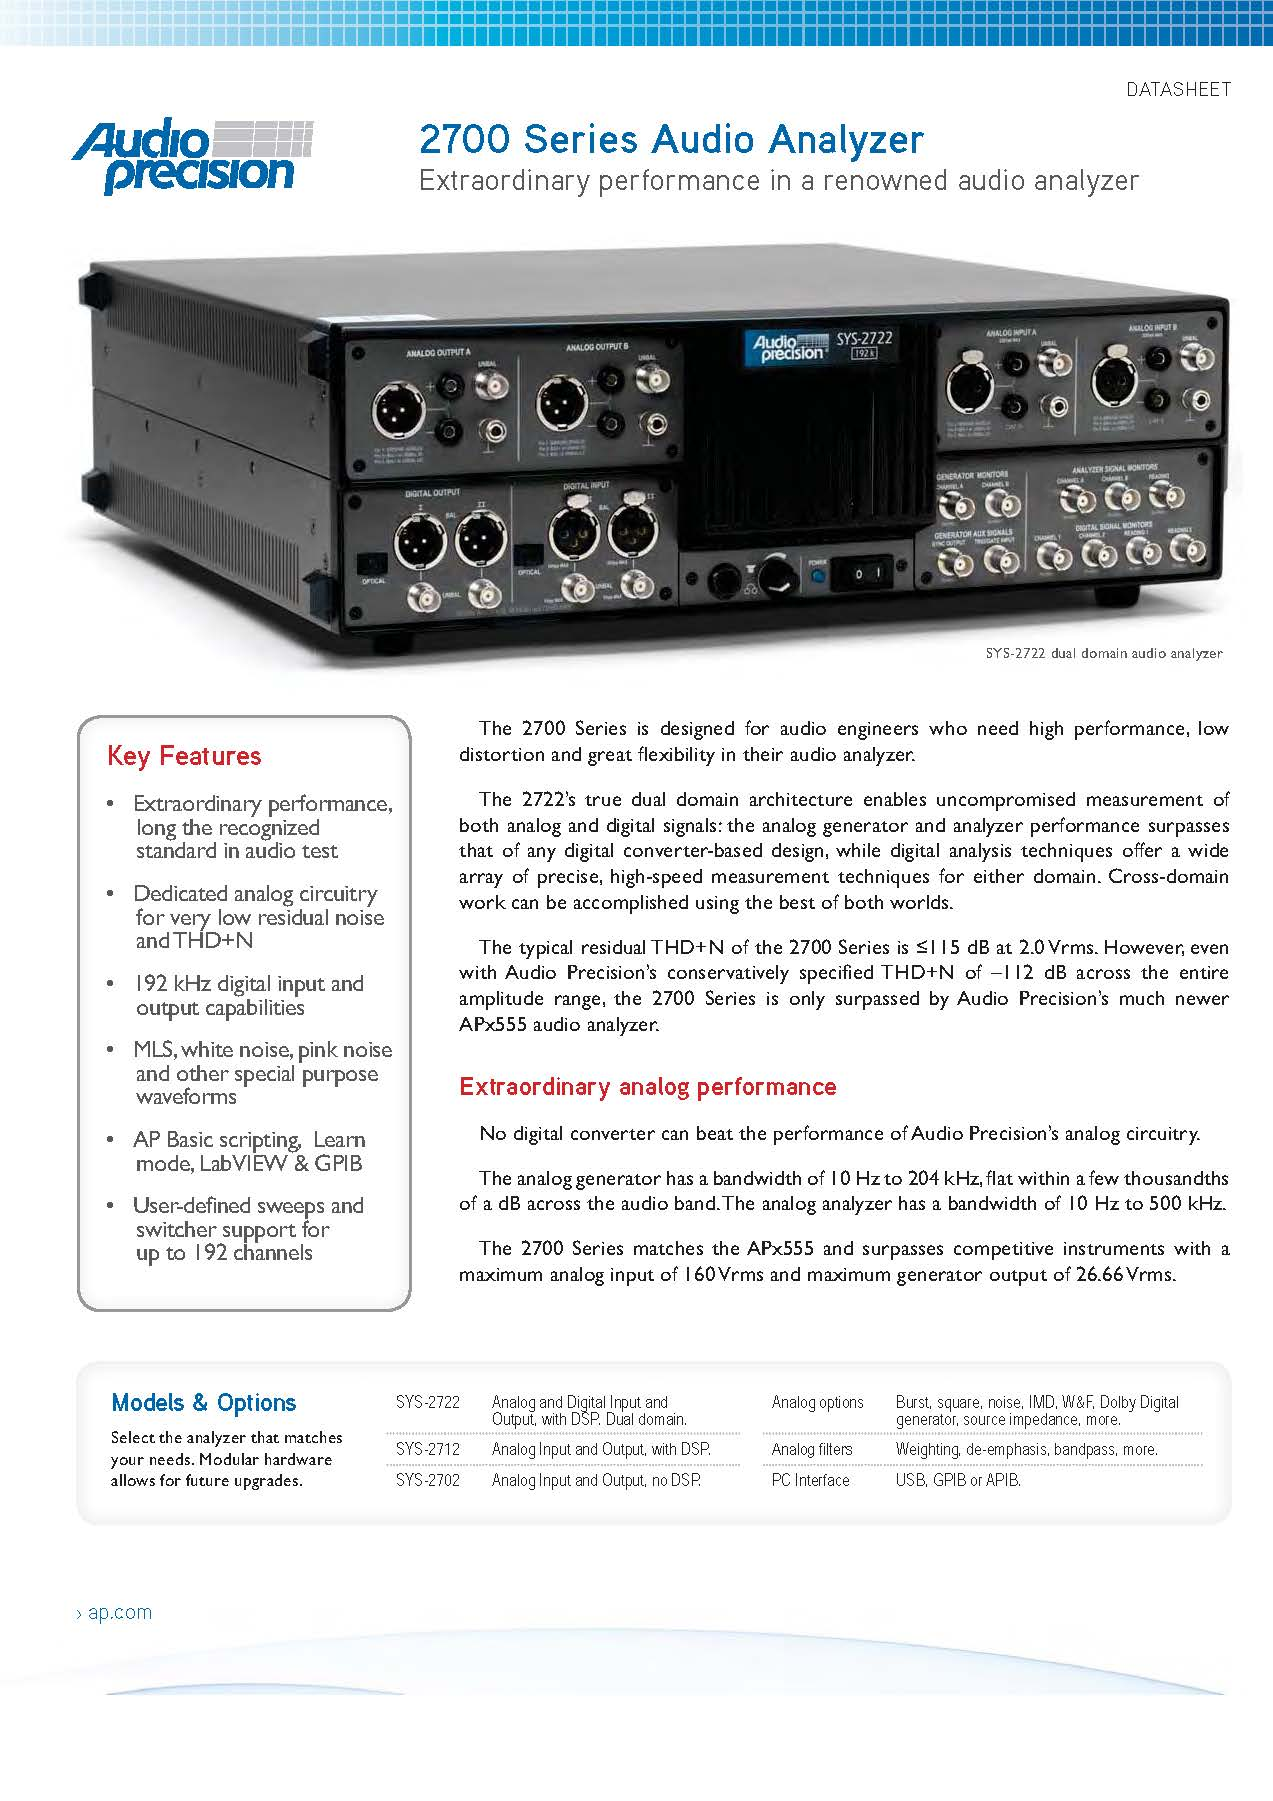 2700 Series Audio Analyser datasheet thumb